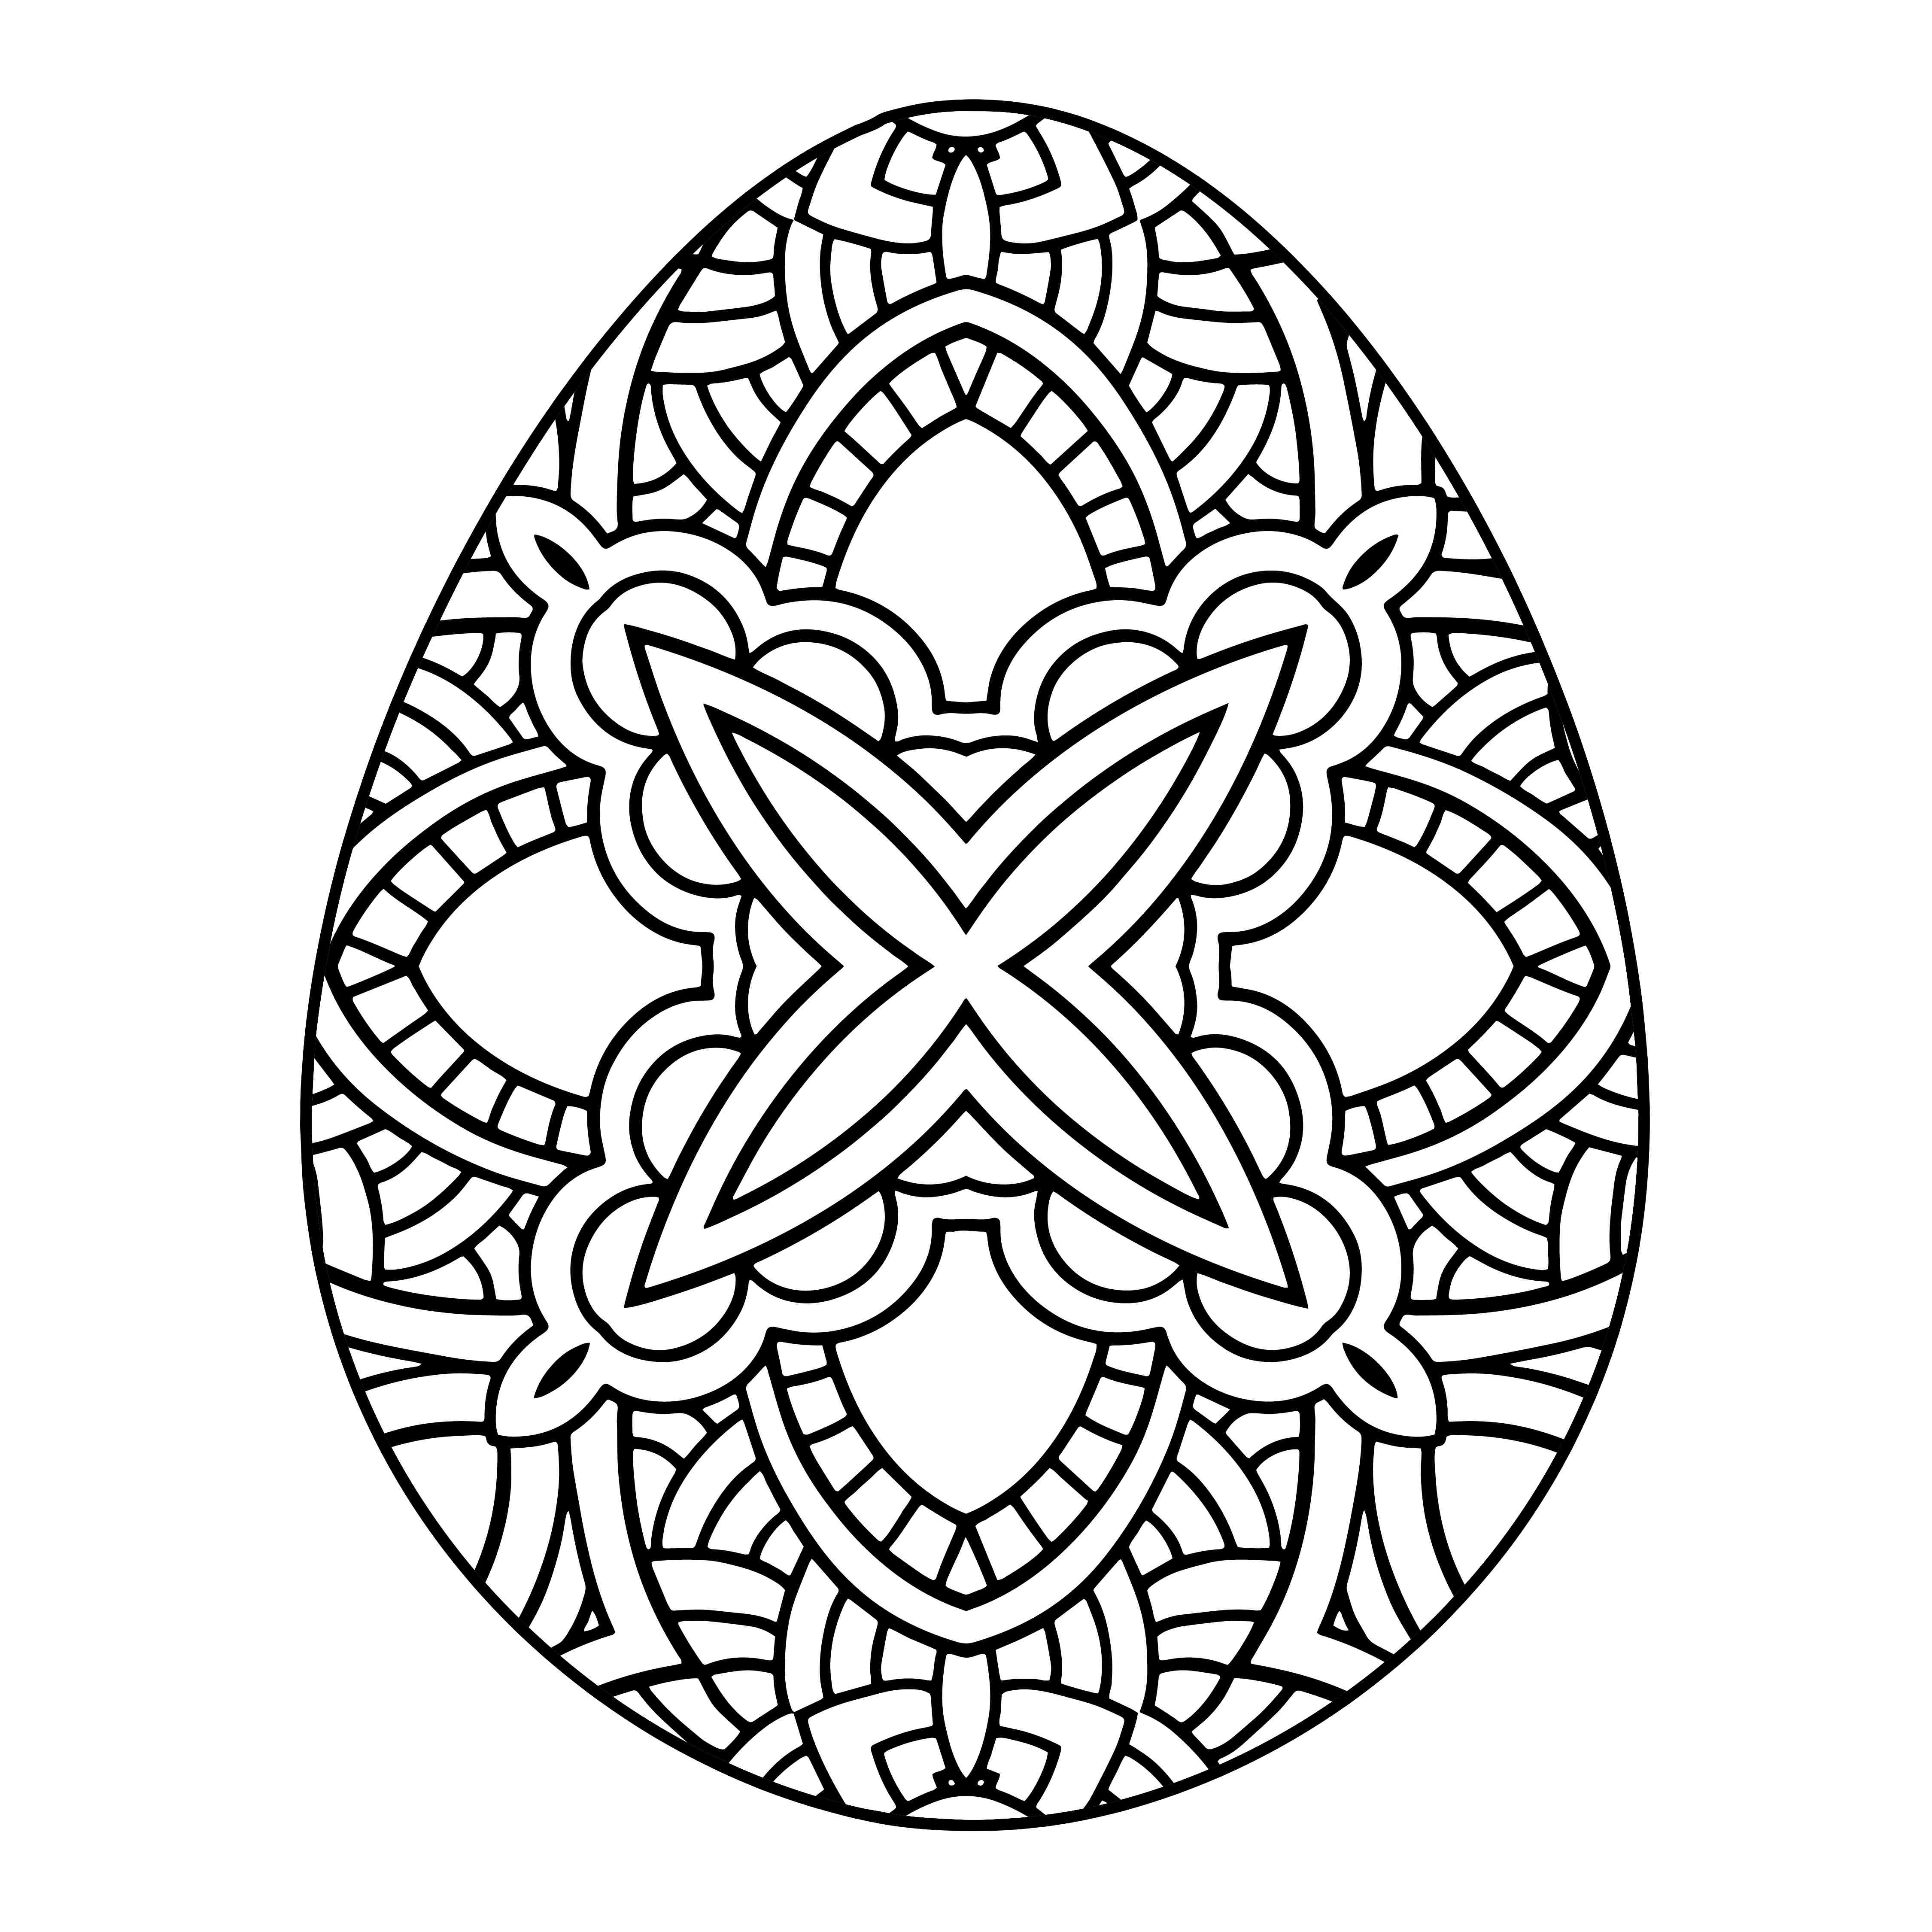 Coloring Pages Print Adult Picaso Style Drawing Coloring Pages Download Of Easter Coloring14 Gallery